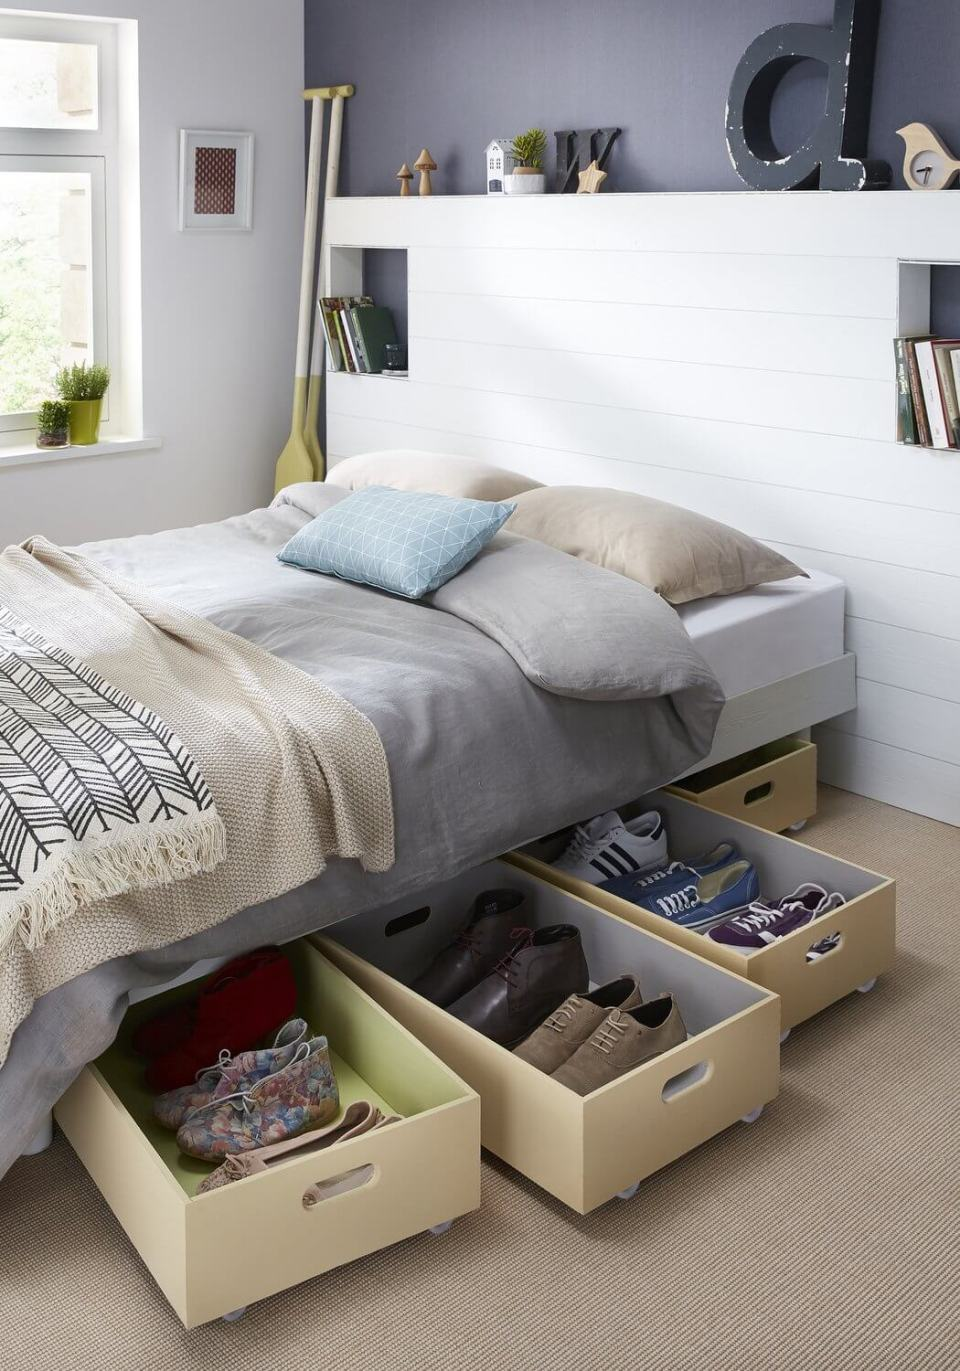 best bedroom organization ideas Wooden boxes mounted on wheels hidden under the bed